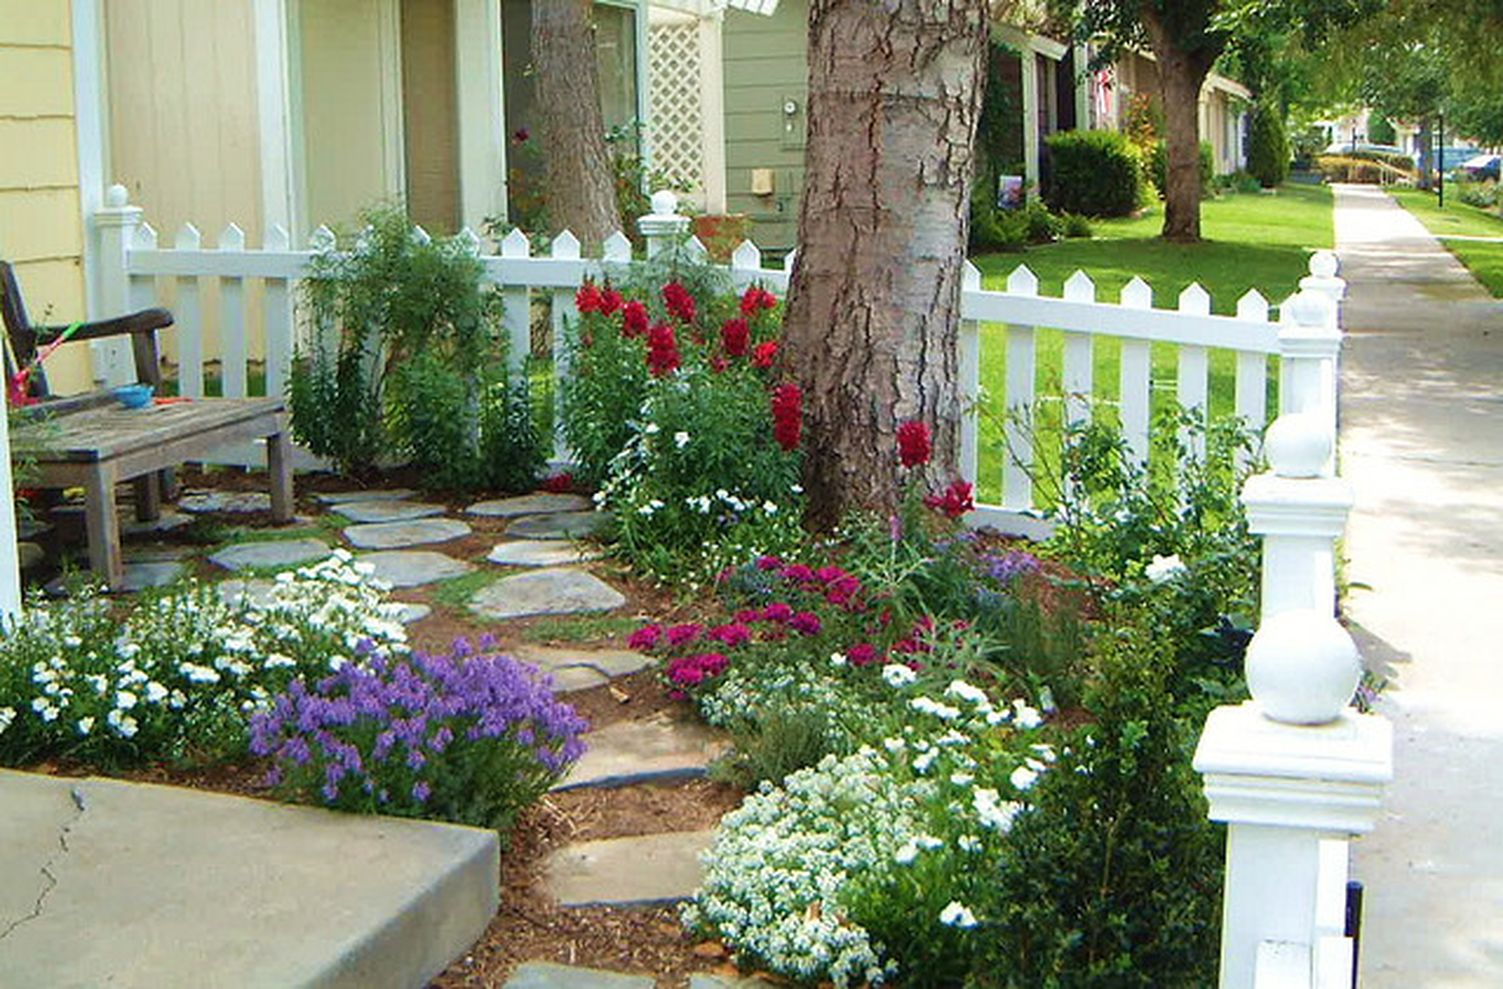 87 Cute and Simple Tiny Patio Garden Ideas - Round Decor